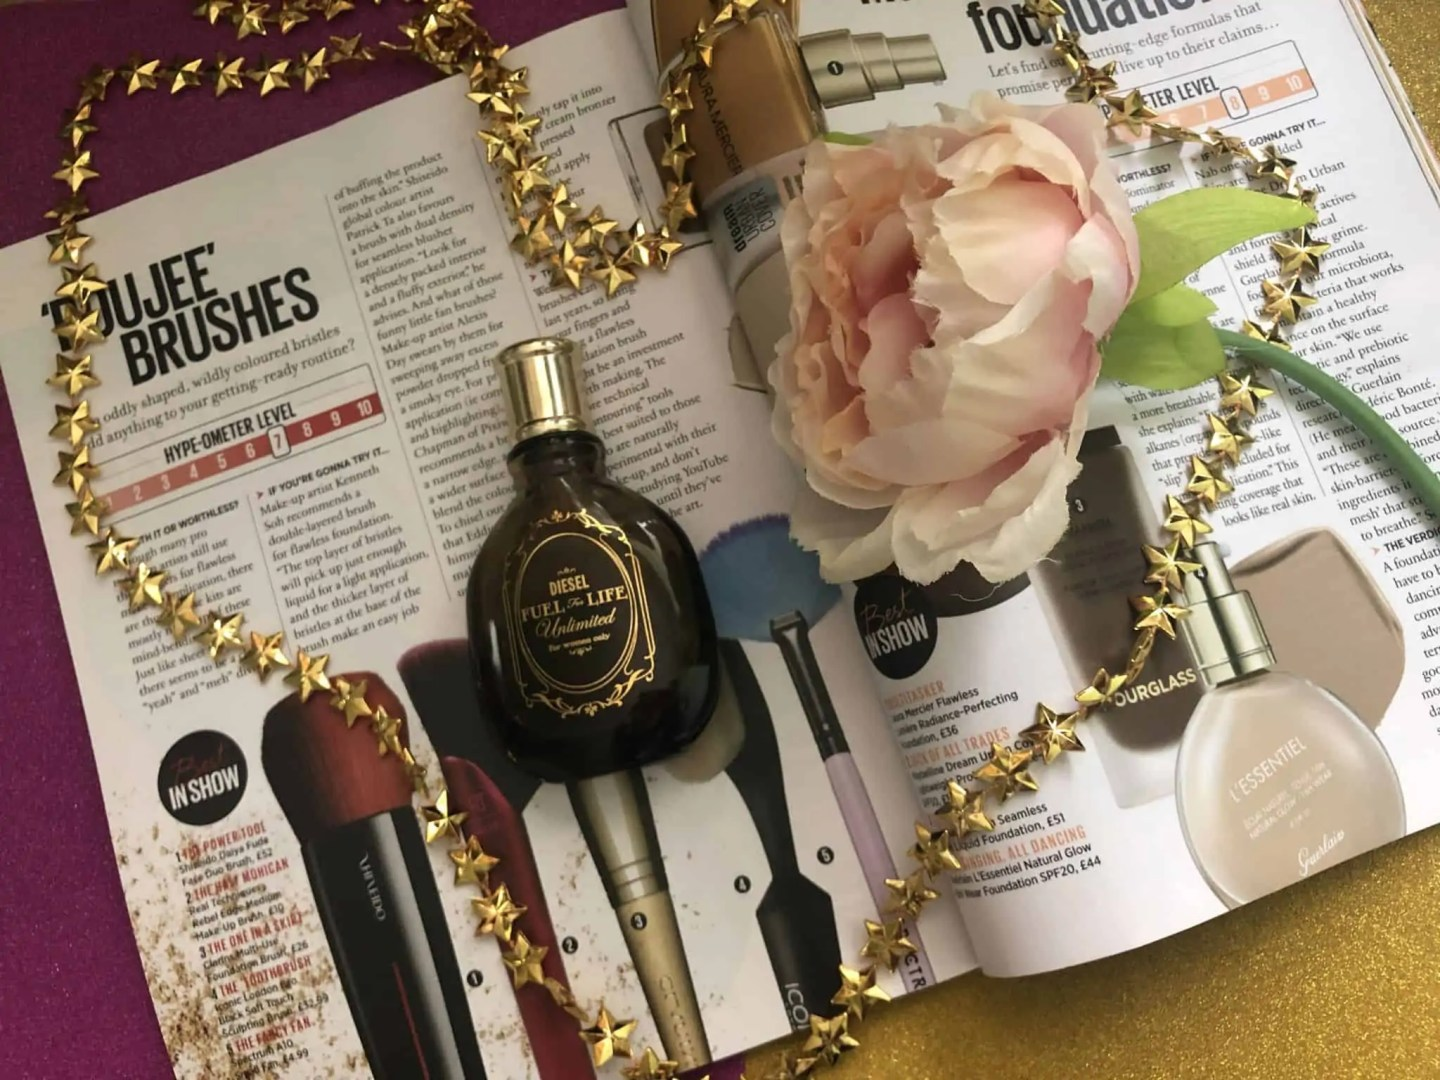 diesel fuel for life unlimited perfume